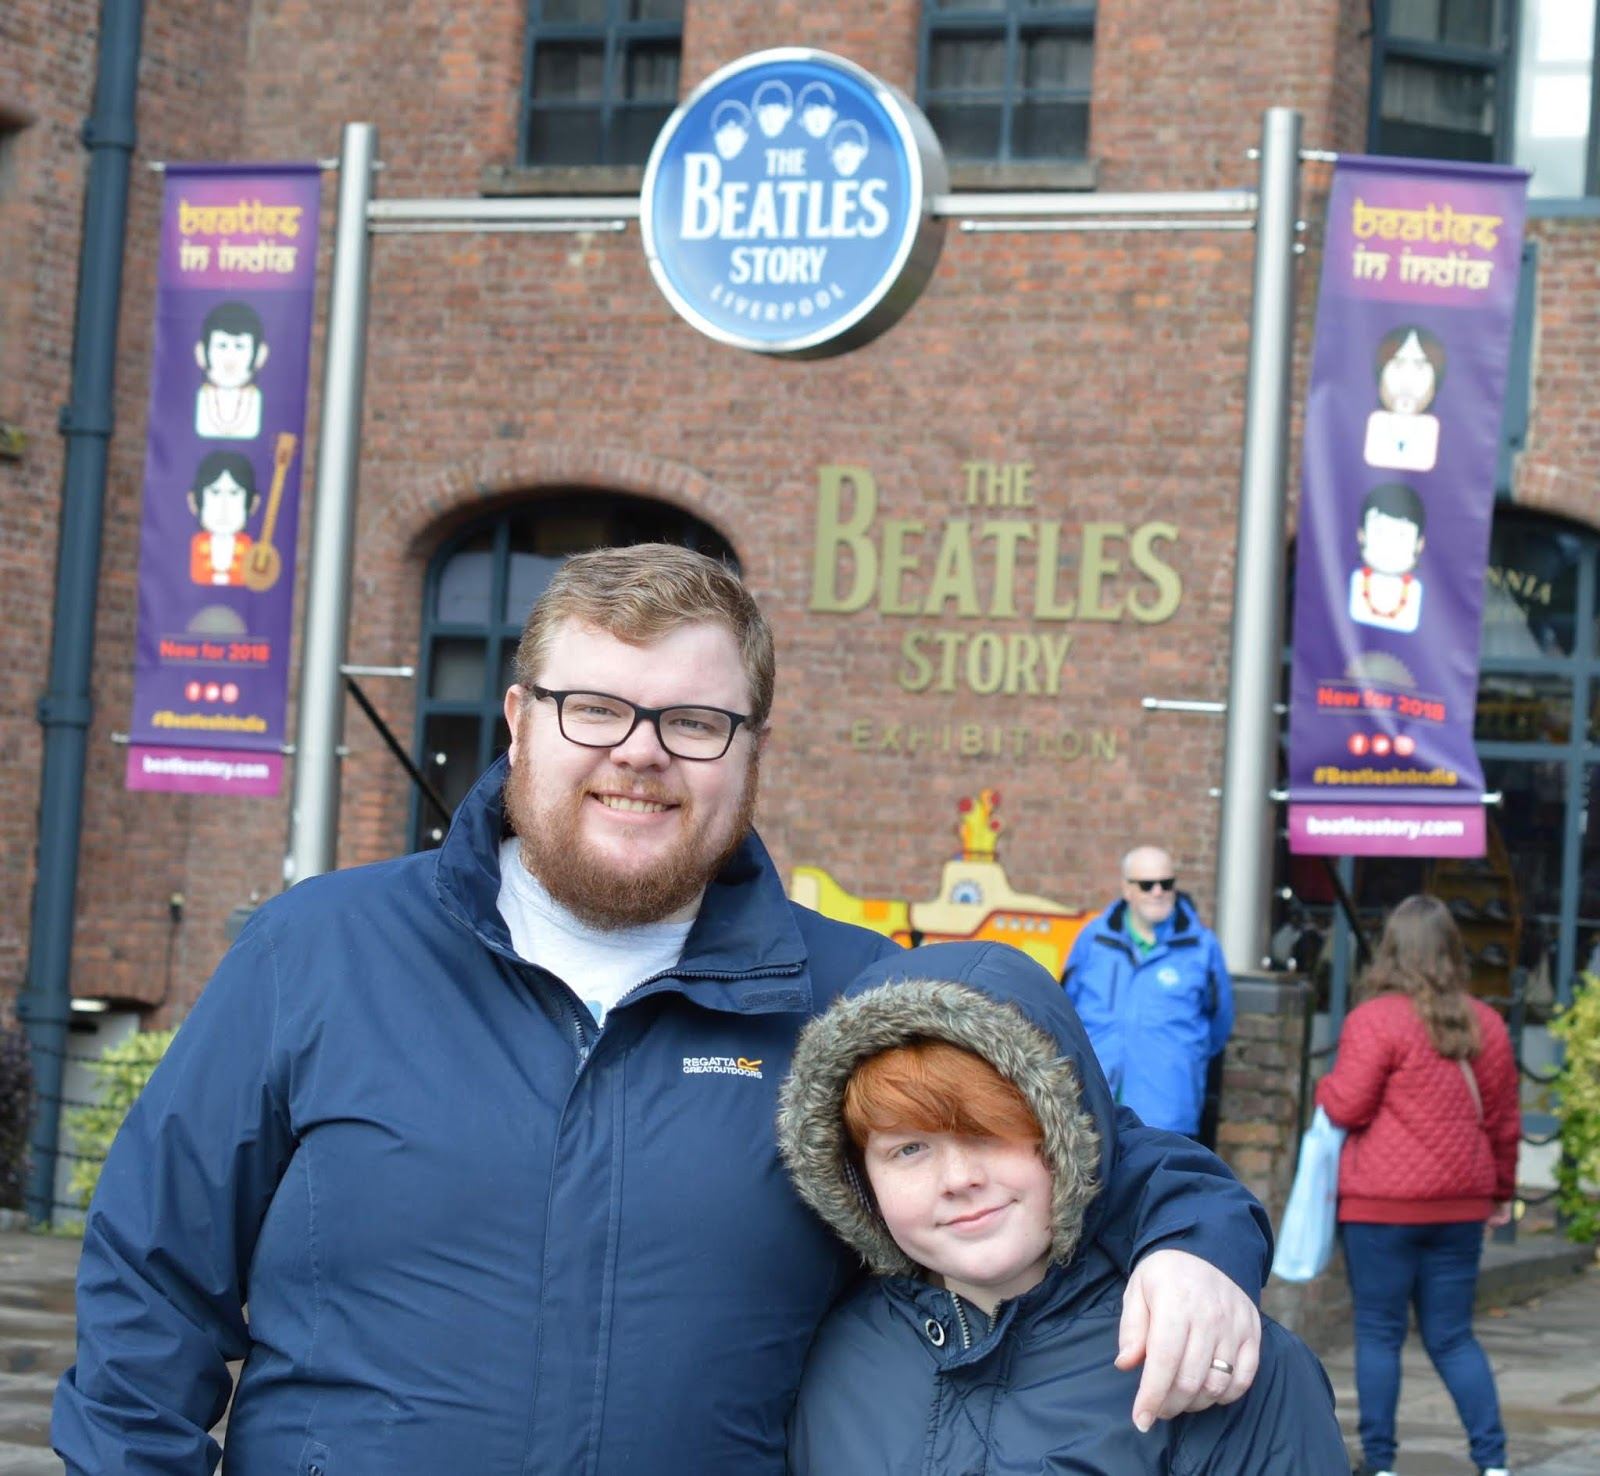 How to Spend 24 Hours in Liverpool with Tweens - The Beatles Story exterior